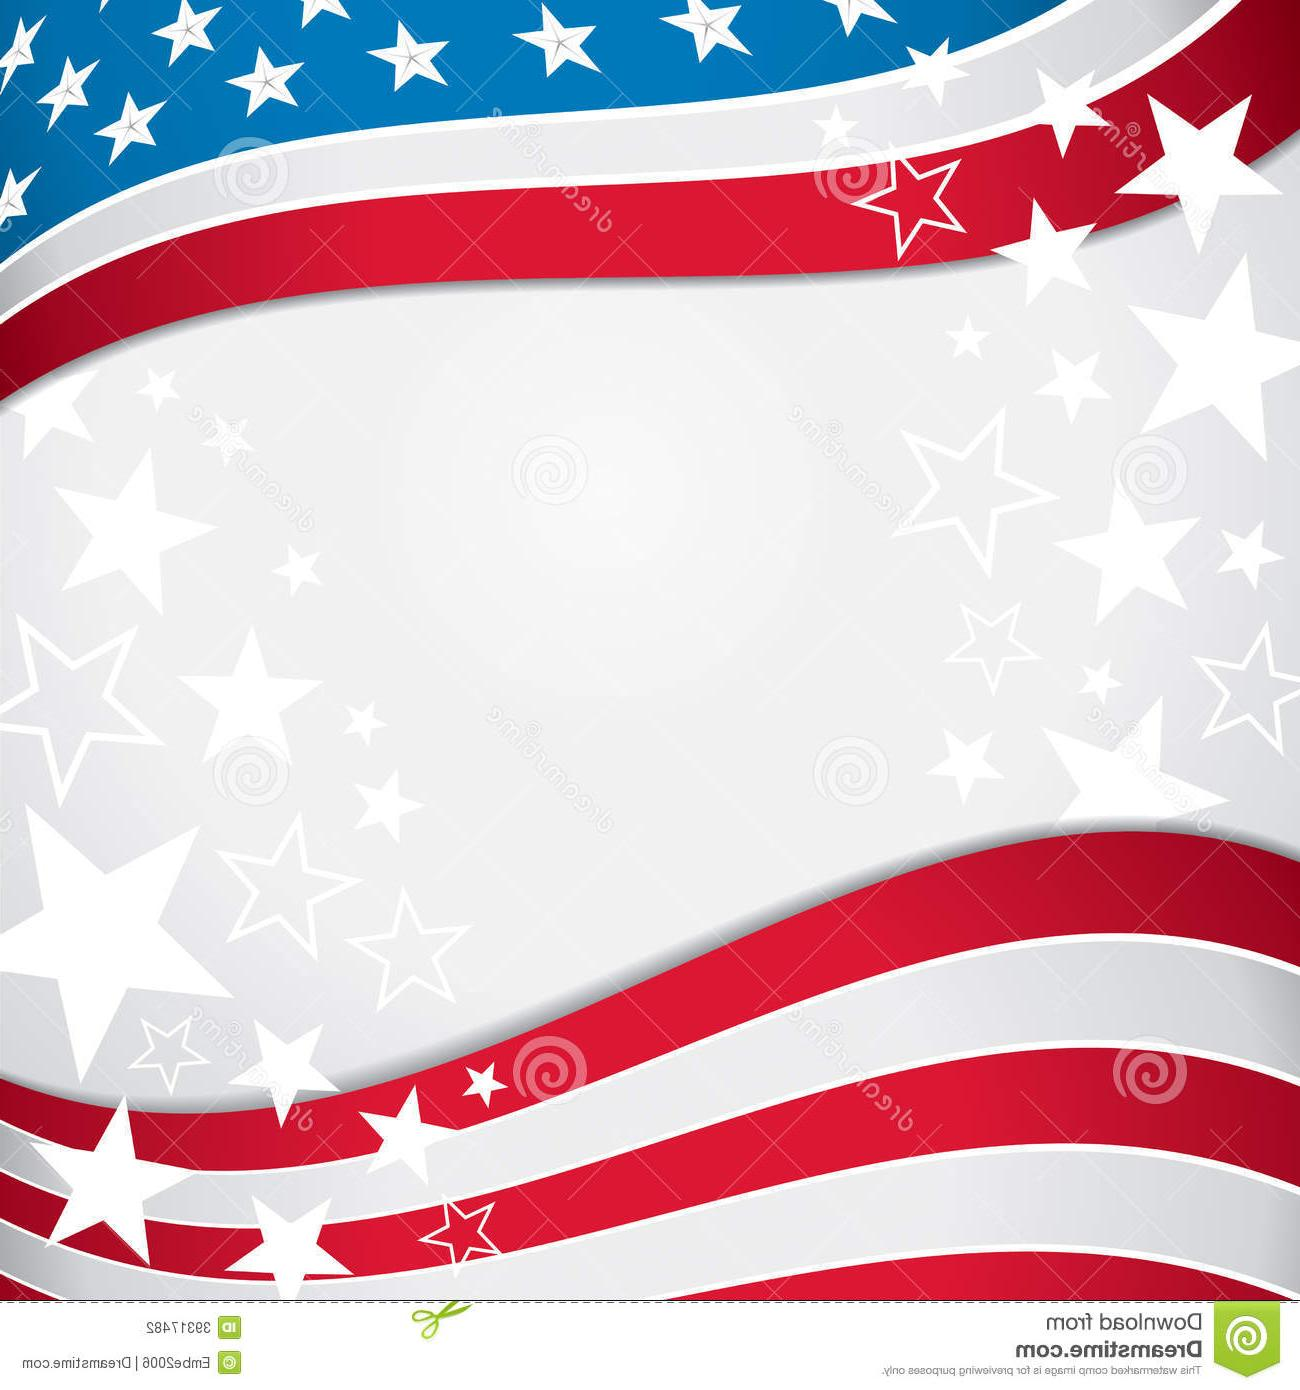 Free Images Of American Flag | Free download best Free ...